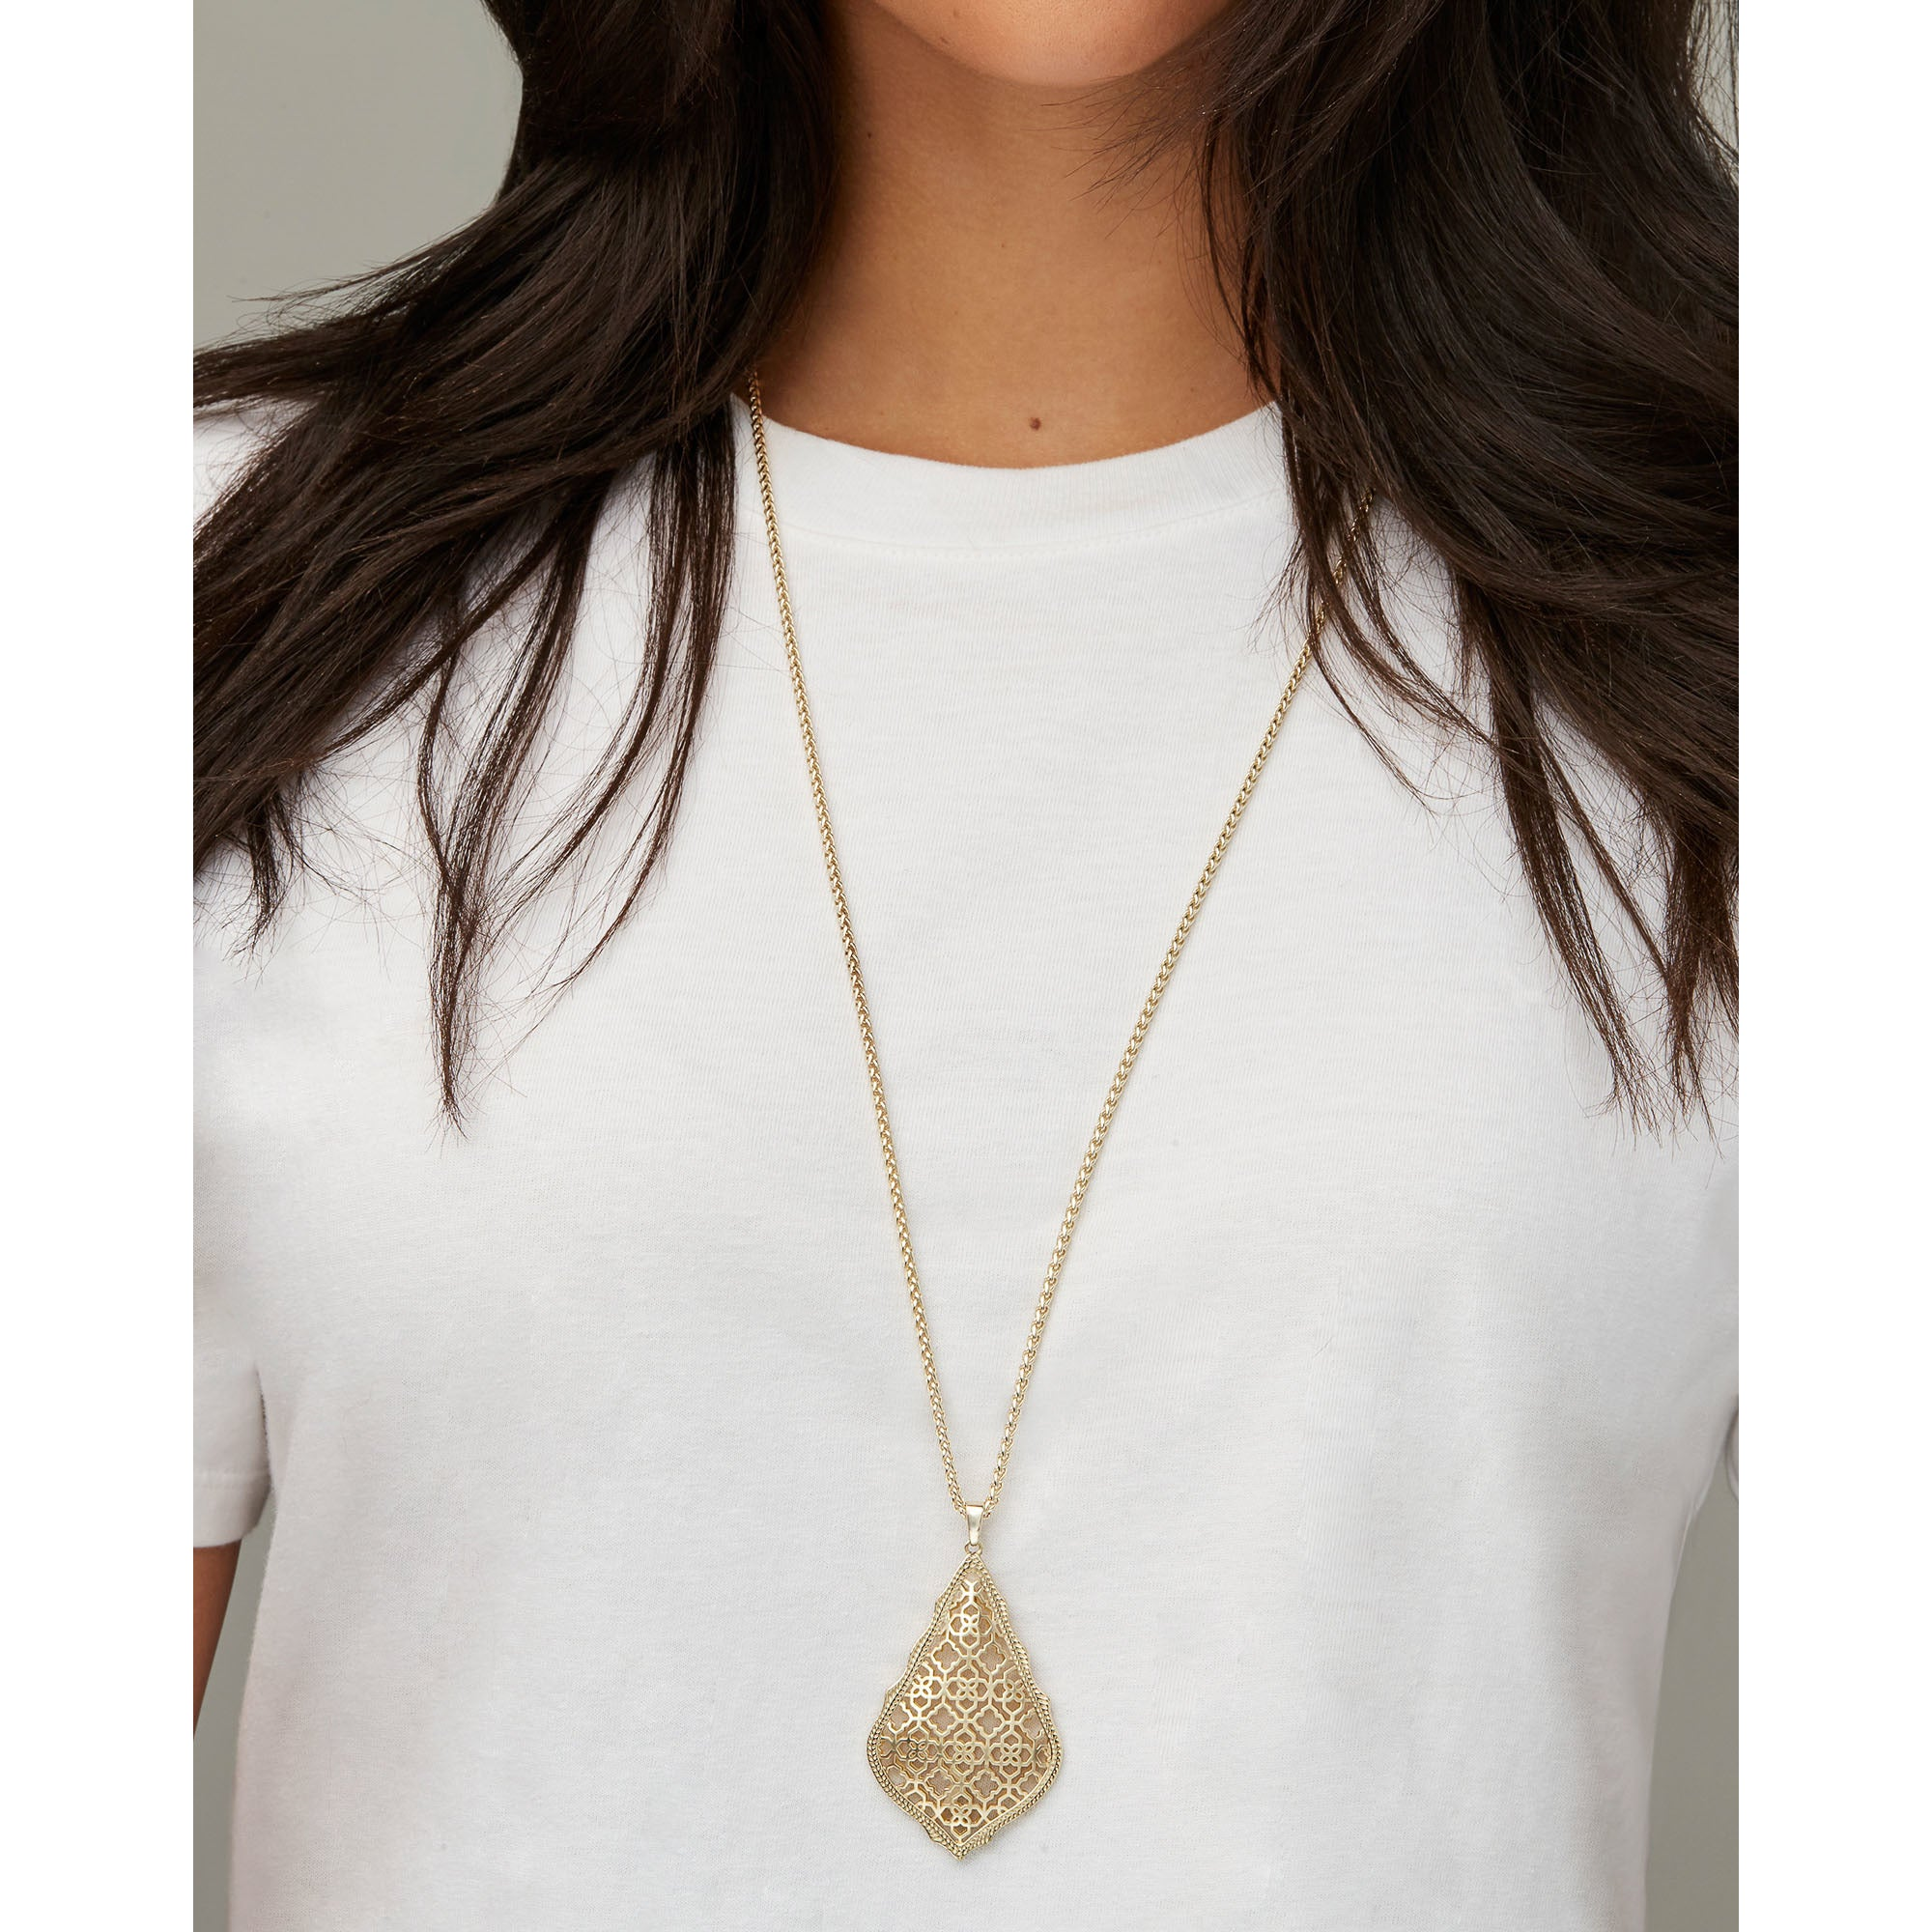 Kendra Scott -  Aiden Gold Long Pendant Necklace In Gold Filigree Mix